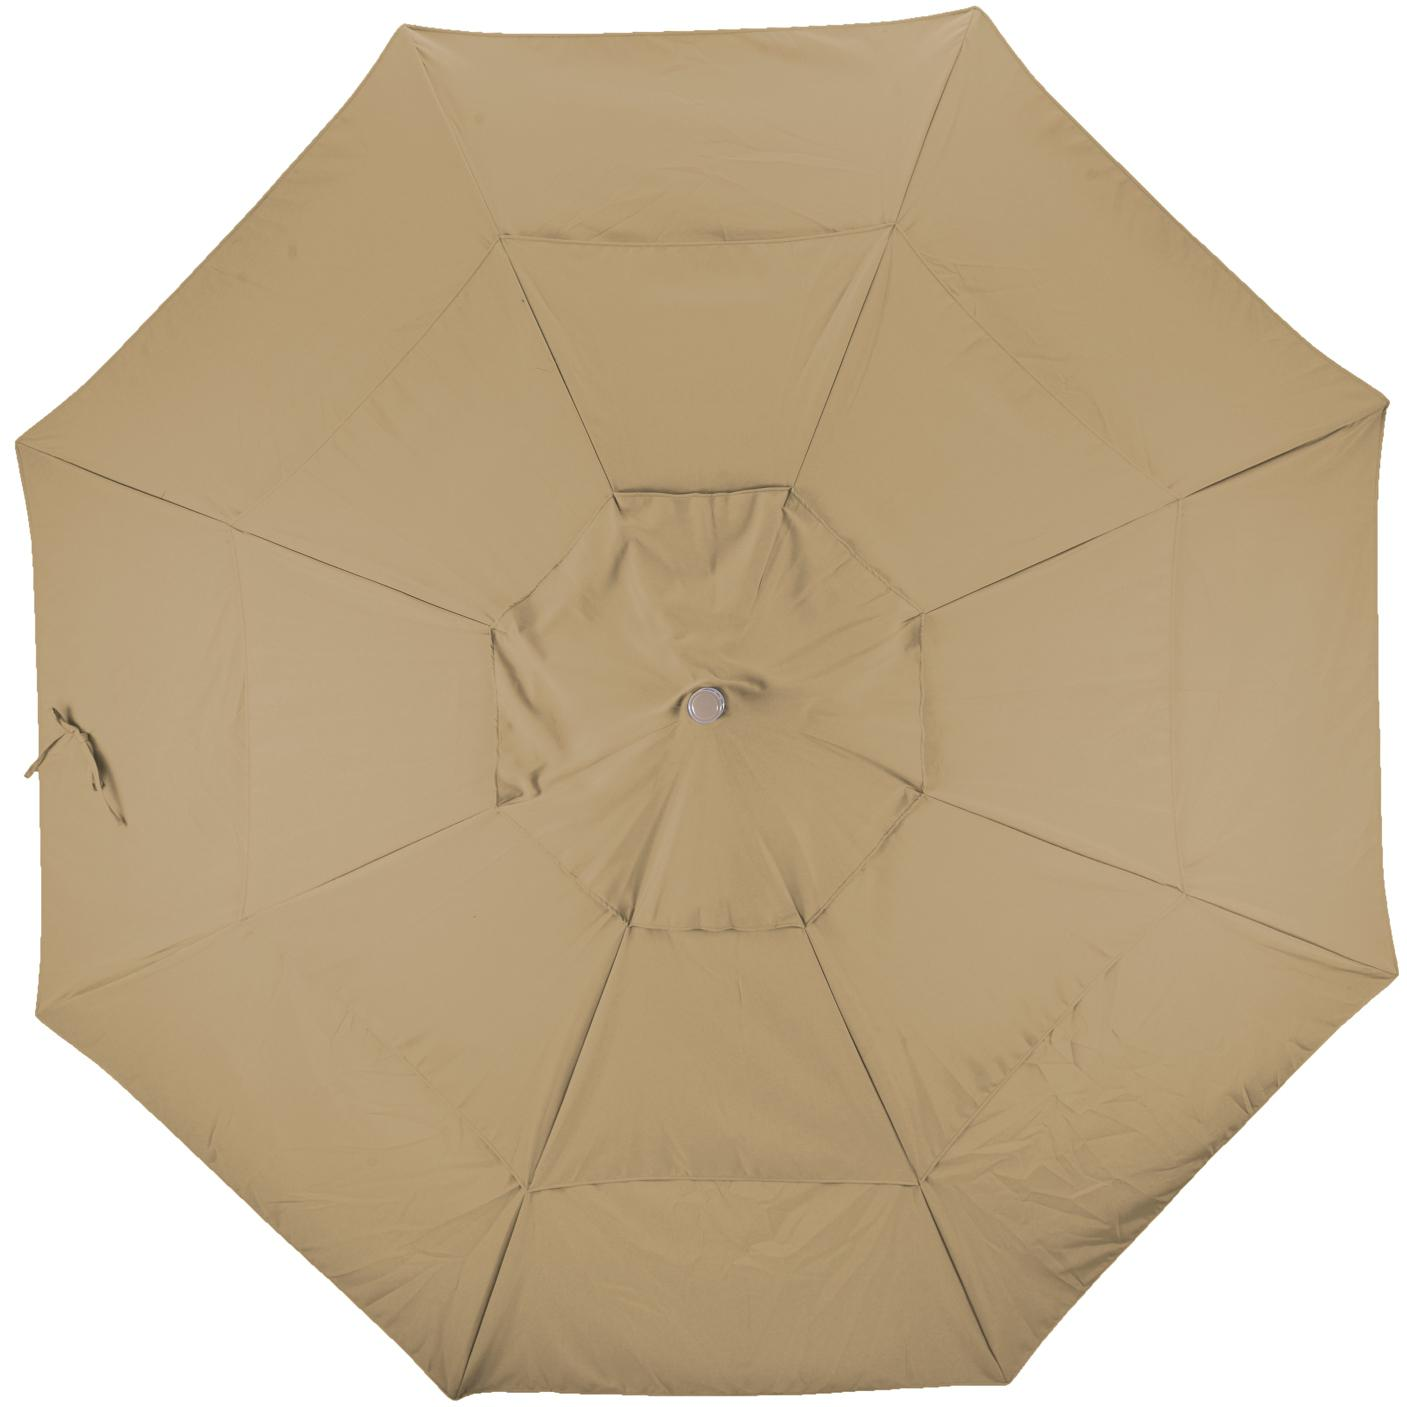 California Umbrella Sunbrella A Fabric In Heather Beige 2909736